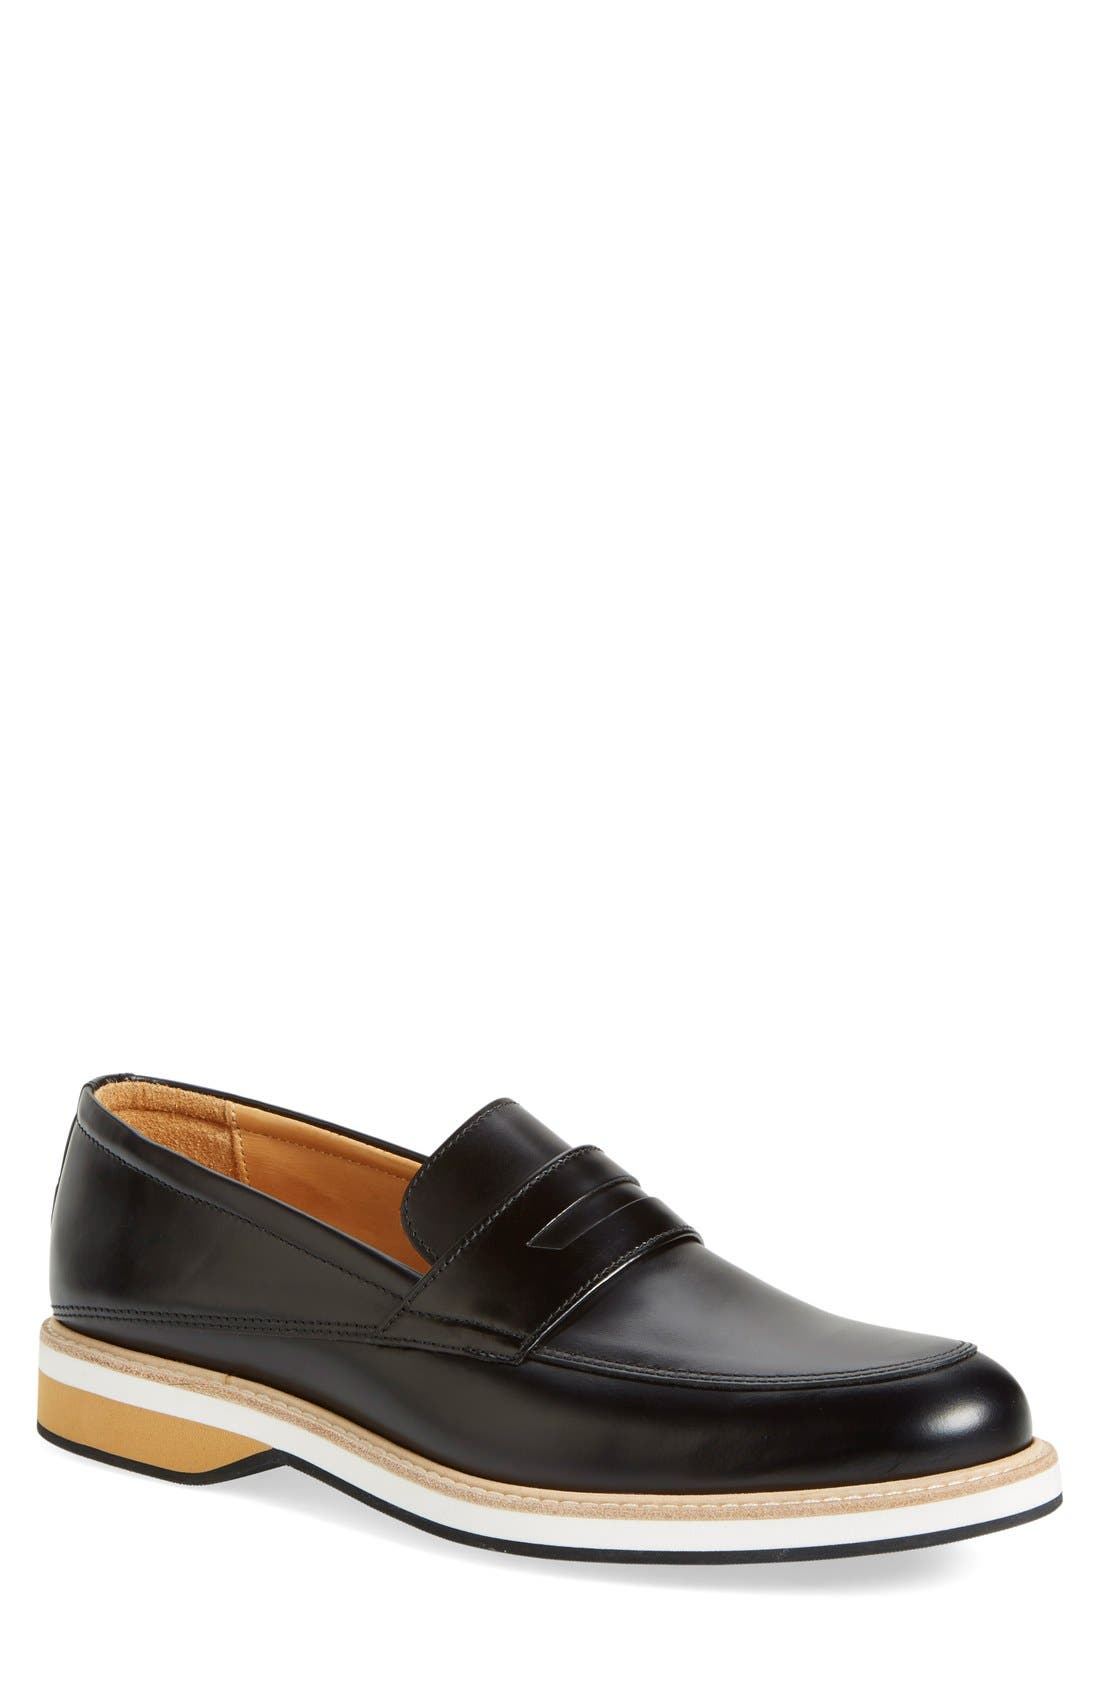 'Marcos' Loafer,                         Main,                         color, Black Leather